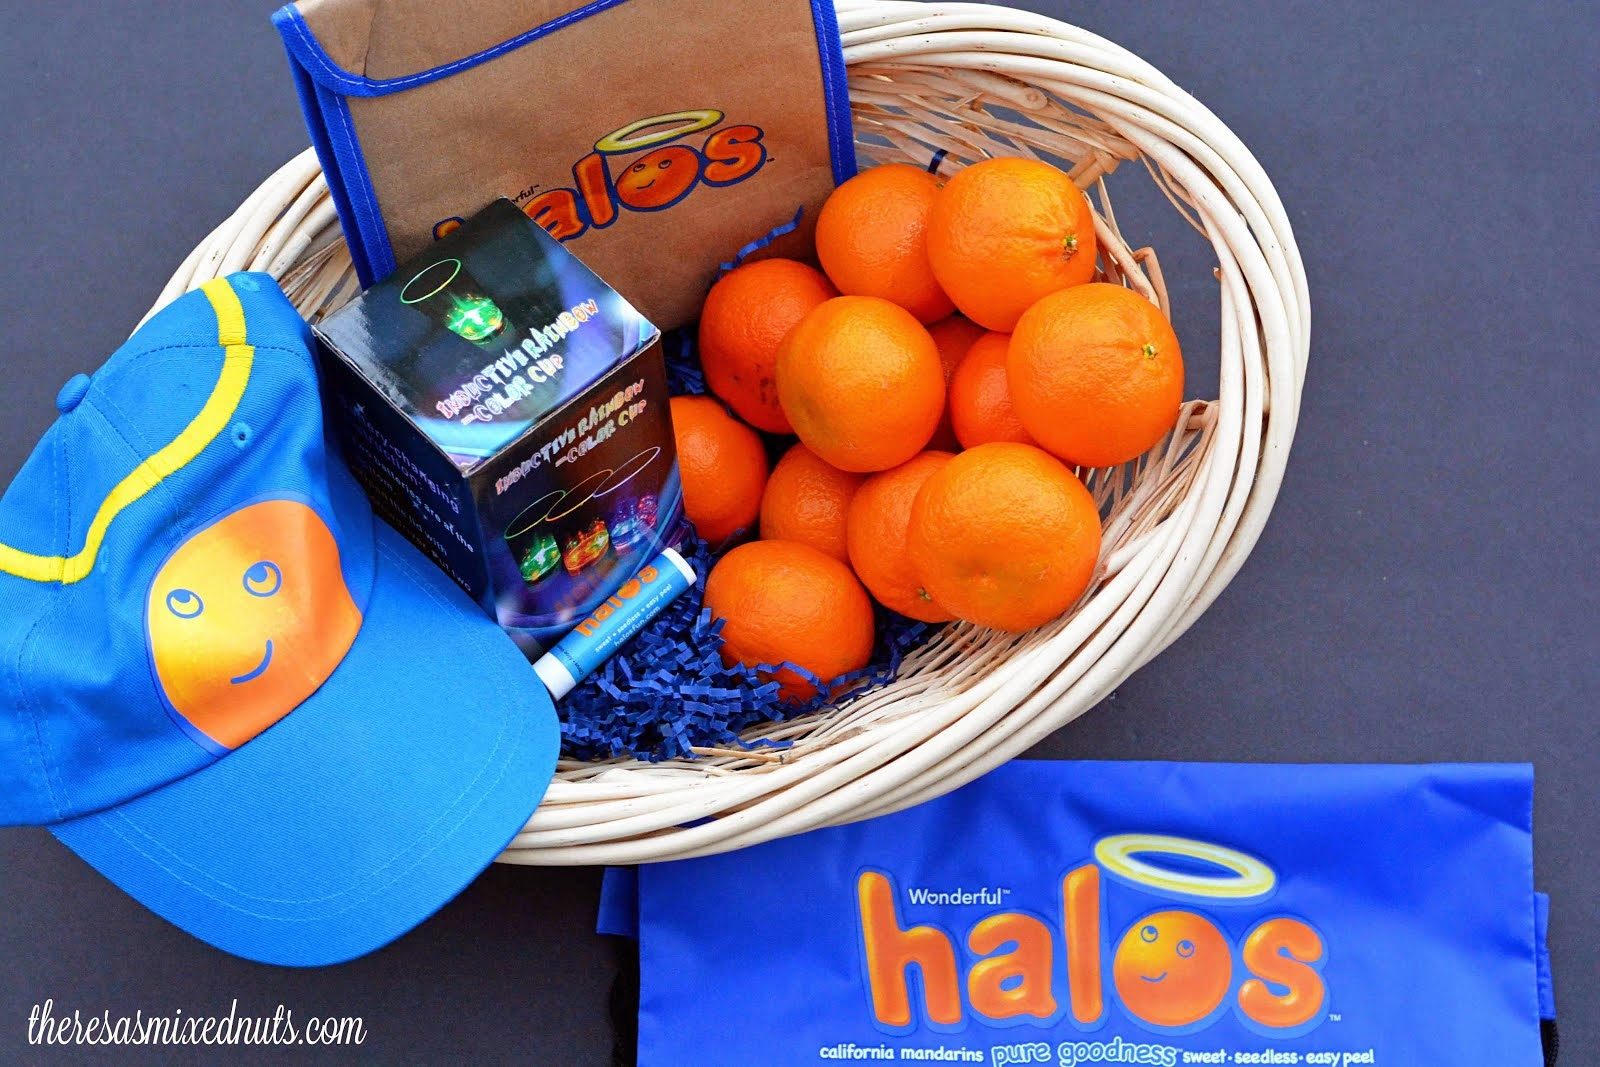 Enter to win Wonderful Halos Prize Pack